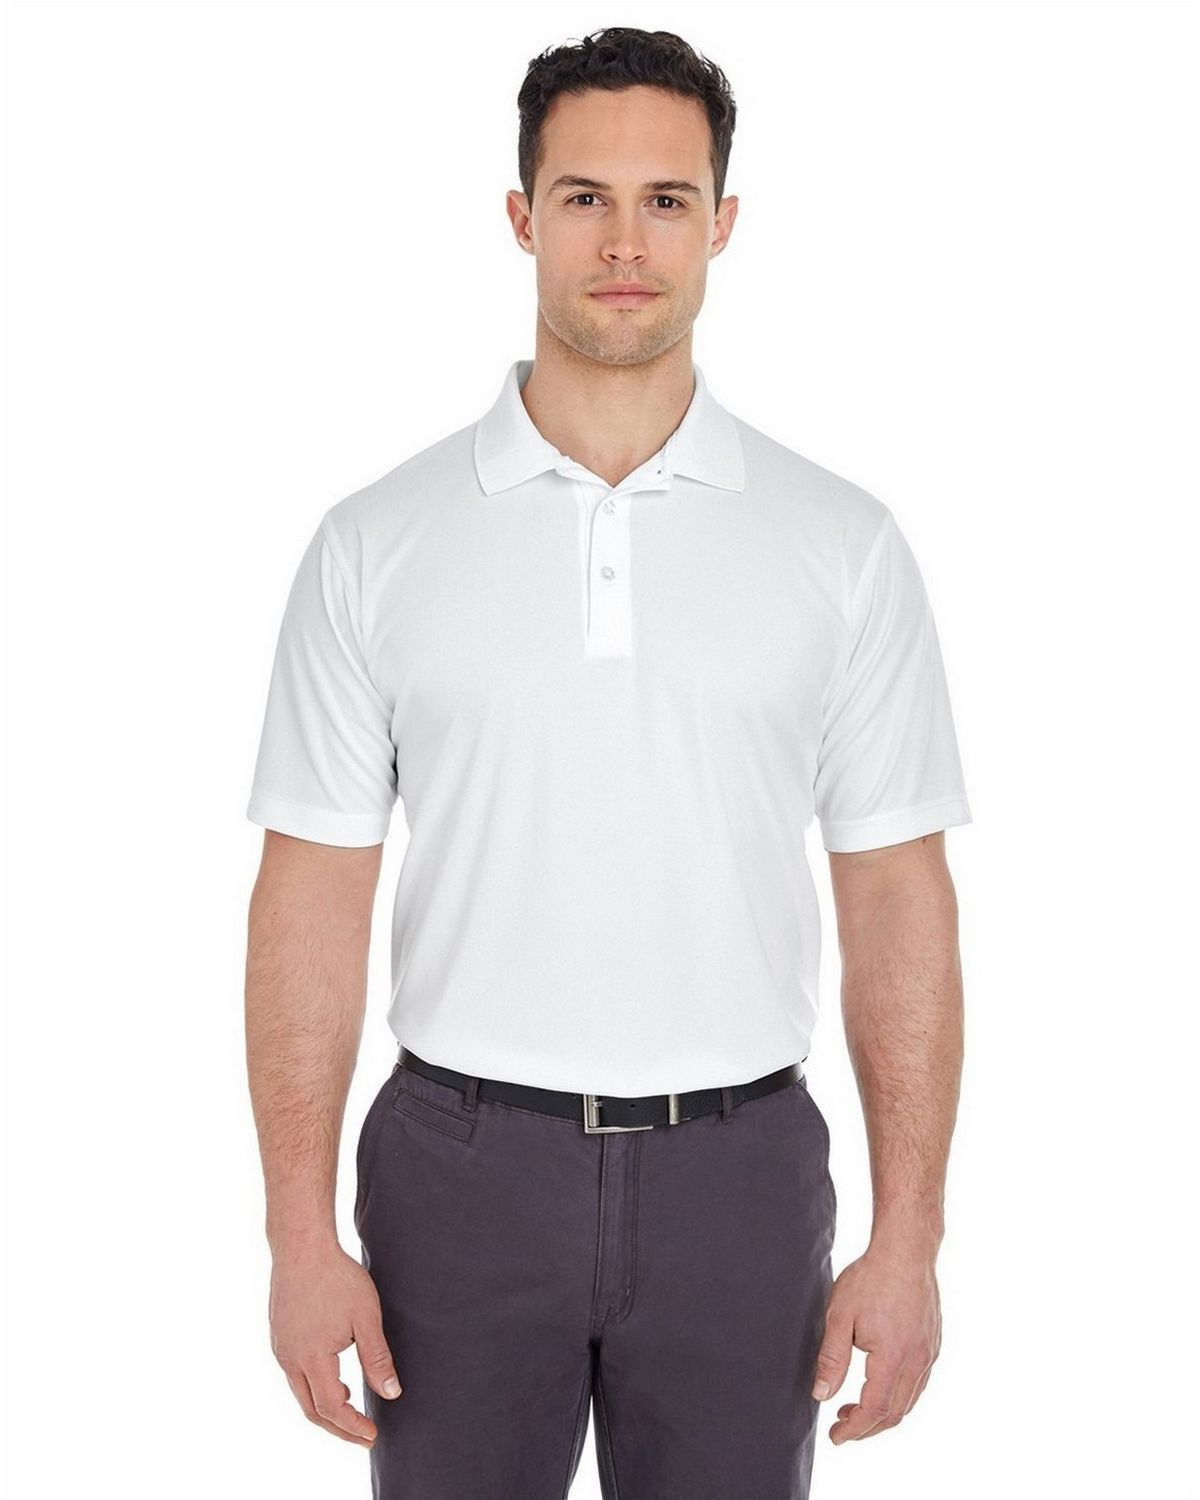 Pack of 5 White Medium. UltraClub Mens Cool /& Dry Classic Polo Shirt